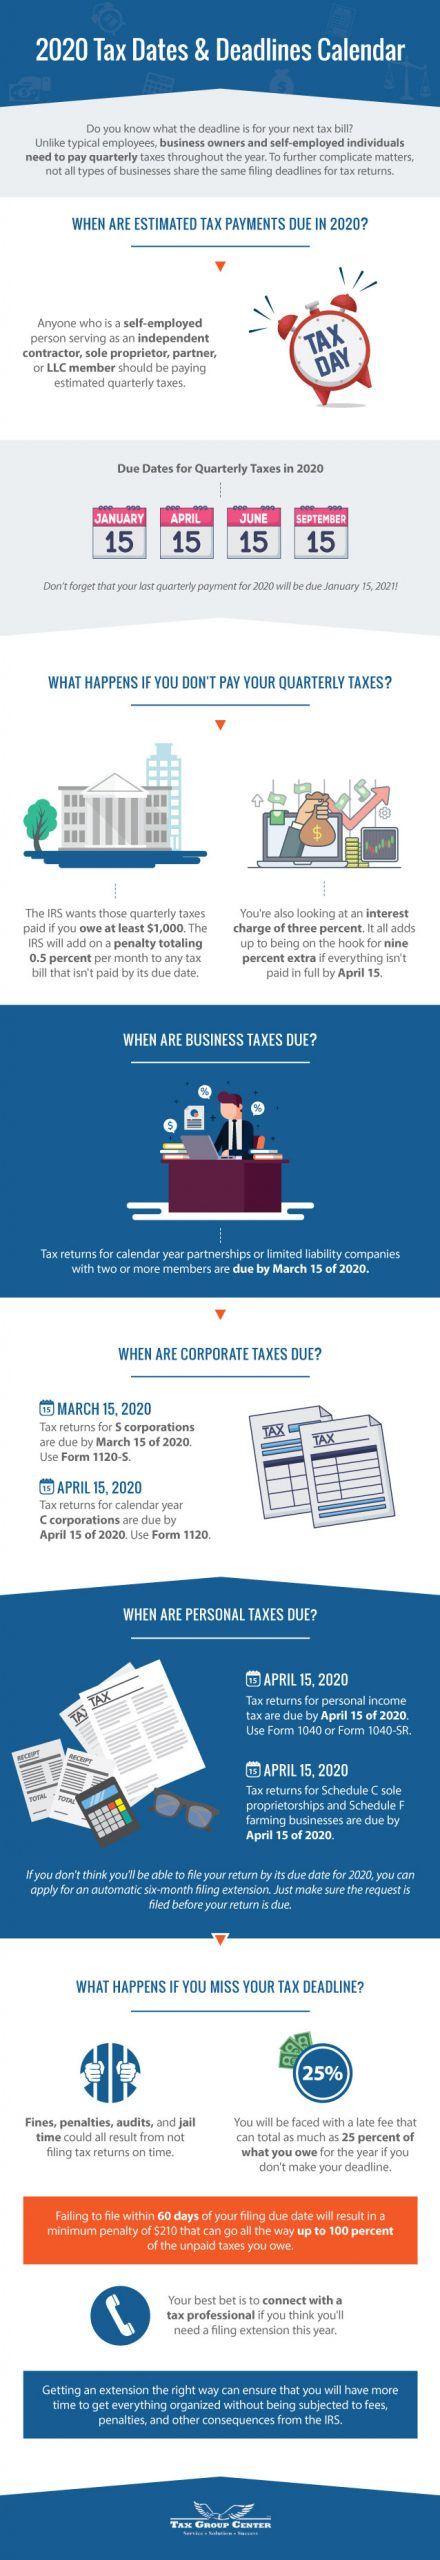 2020 Tax Dates & Deadlines Calendar